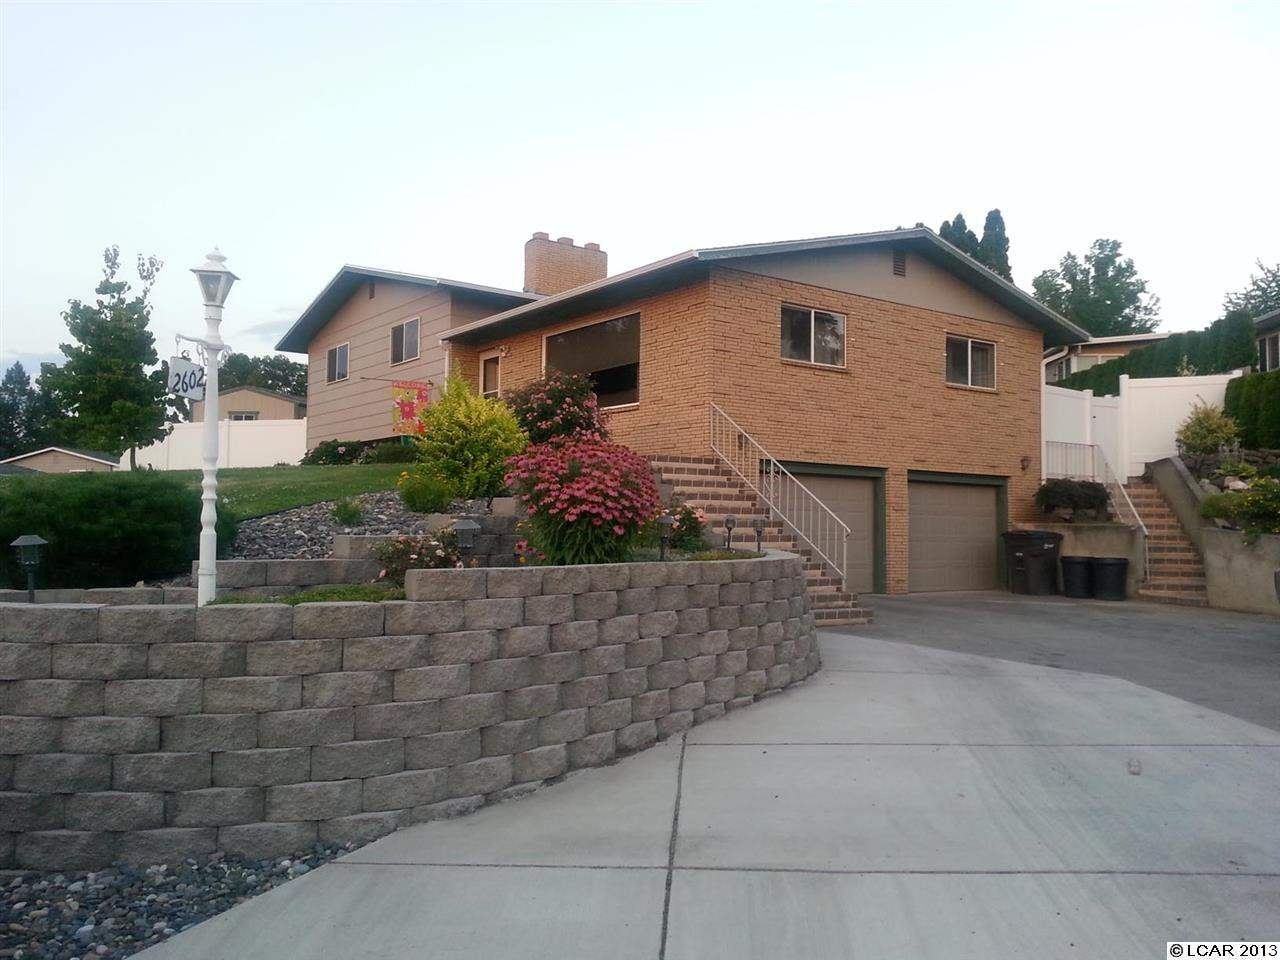 2602 Willow Dr, Lewiston, ID 83501